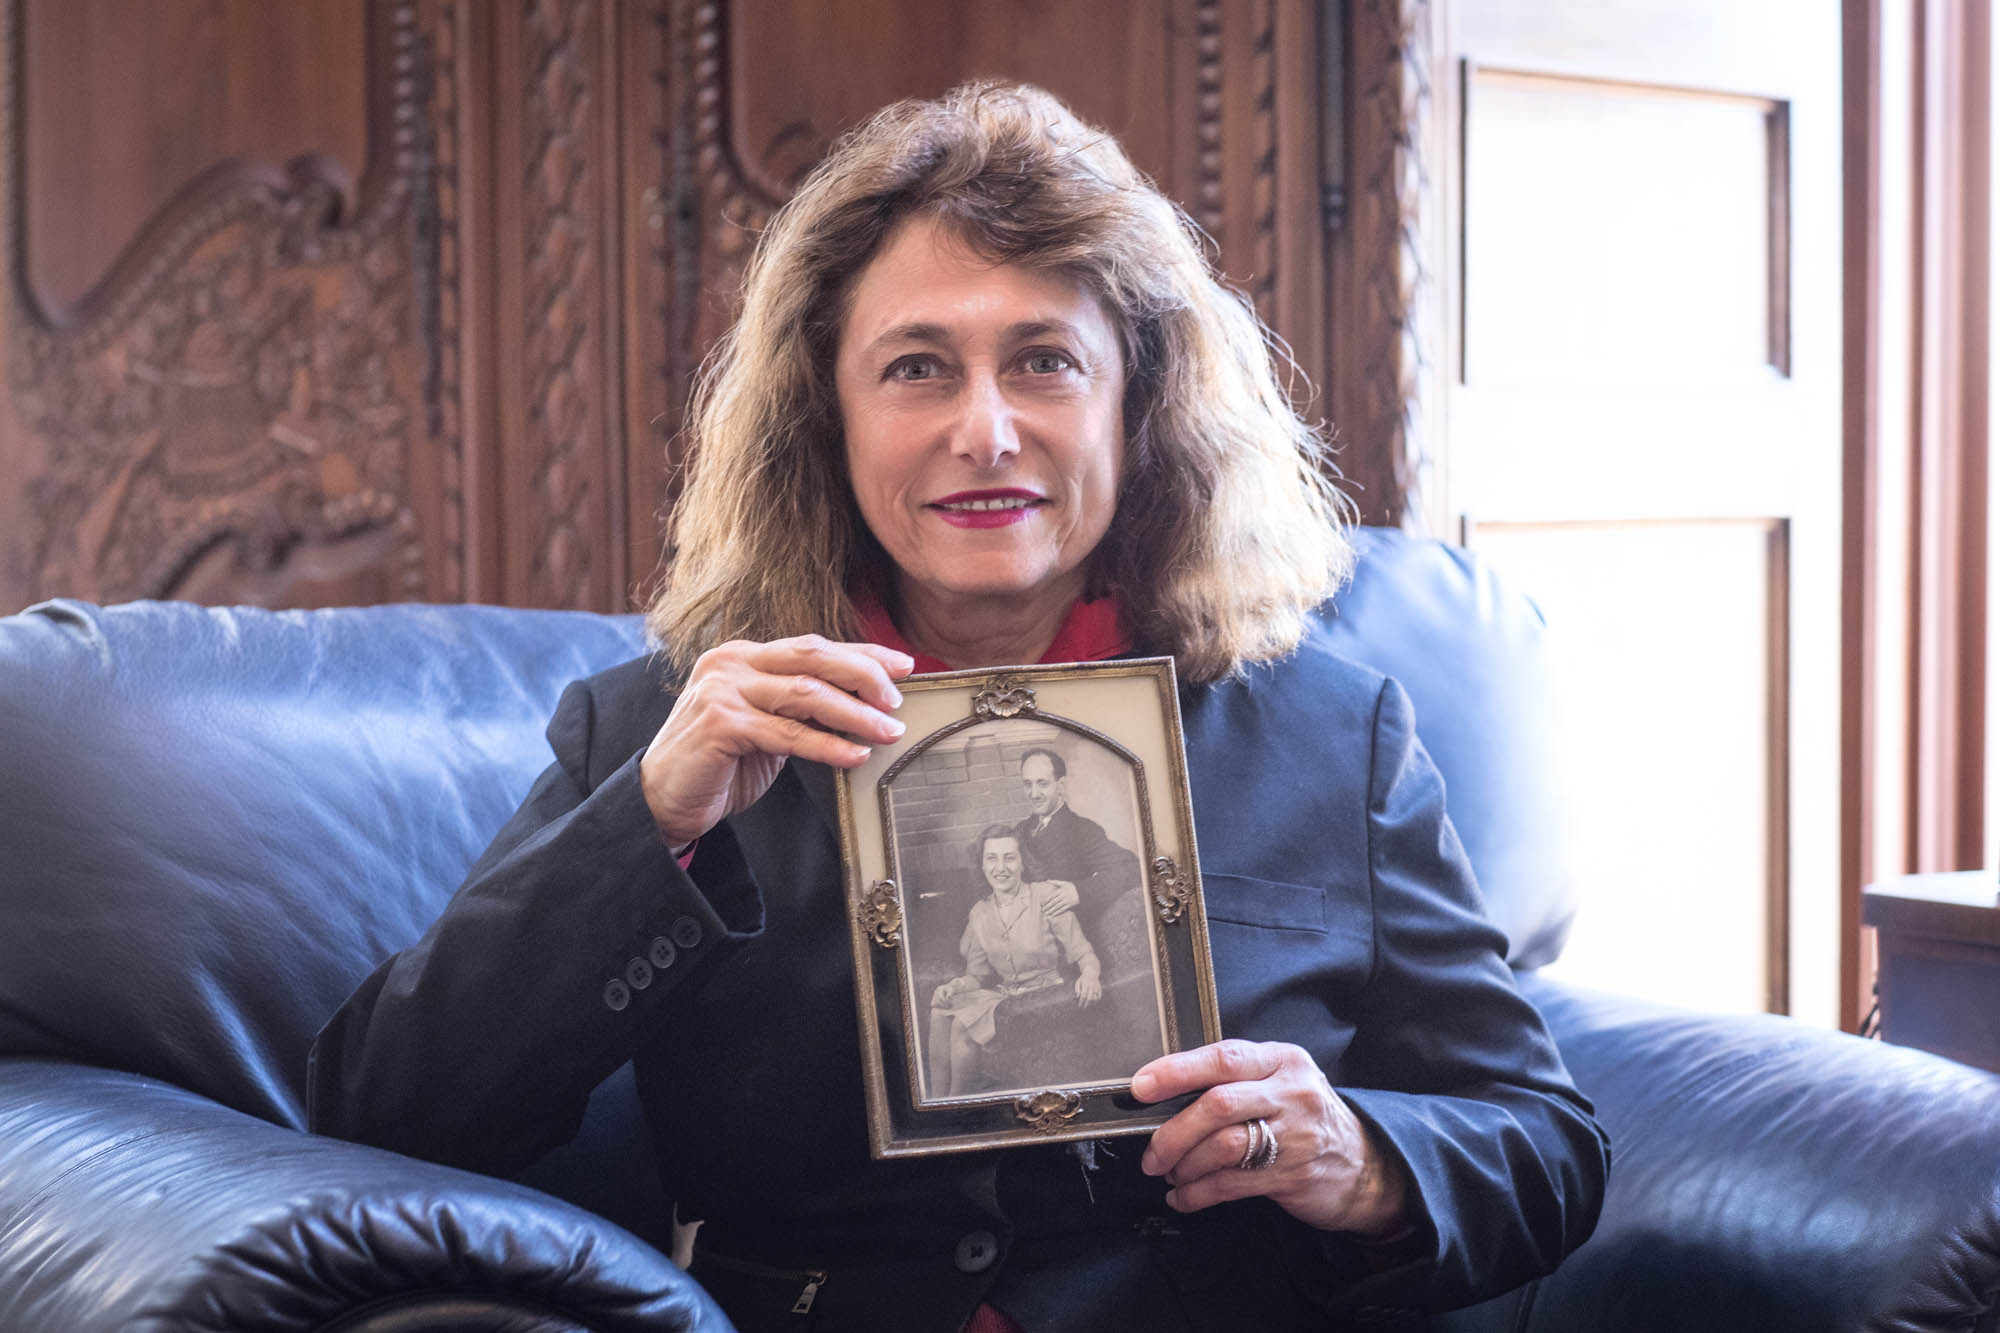 Adrienne Weinberger holds a photo of her parents. At the time of the attack, Marta Weinberger worked for the Army and Samuel Weinberger designed naval ships. (Photo by Sanjay Suchak, University Communications)